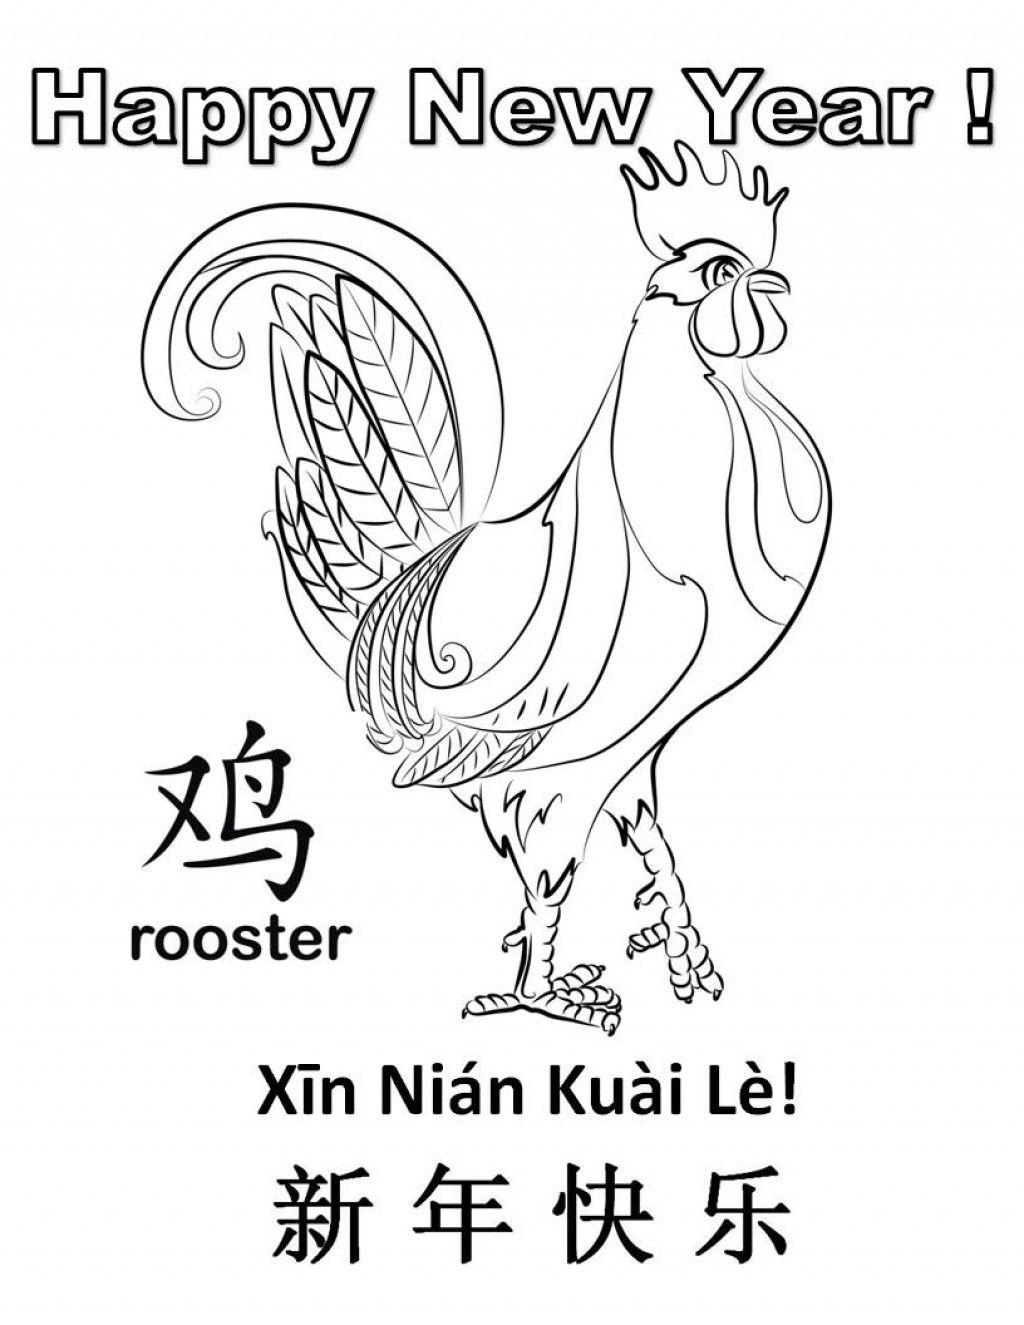 Printable Rooster Coloring Pages Kid Crafts for Chinese